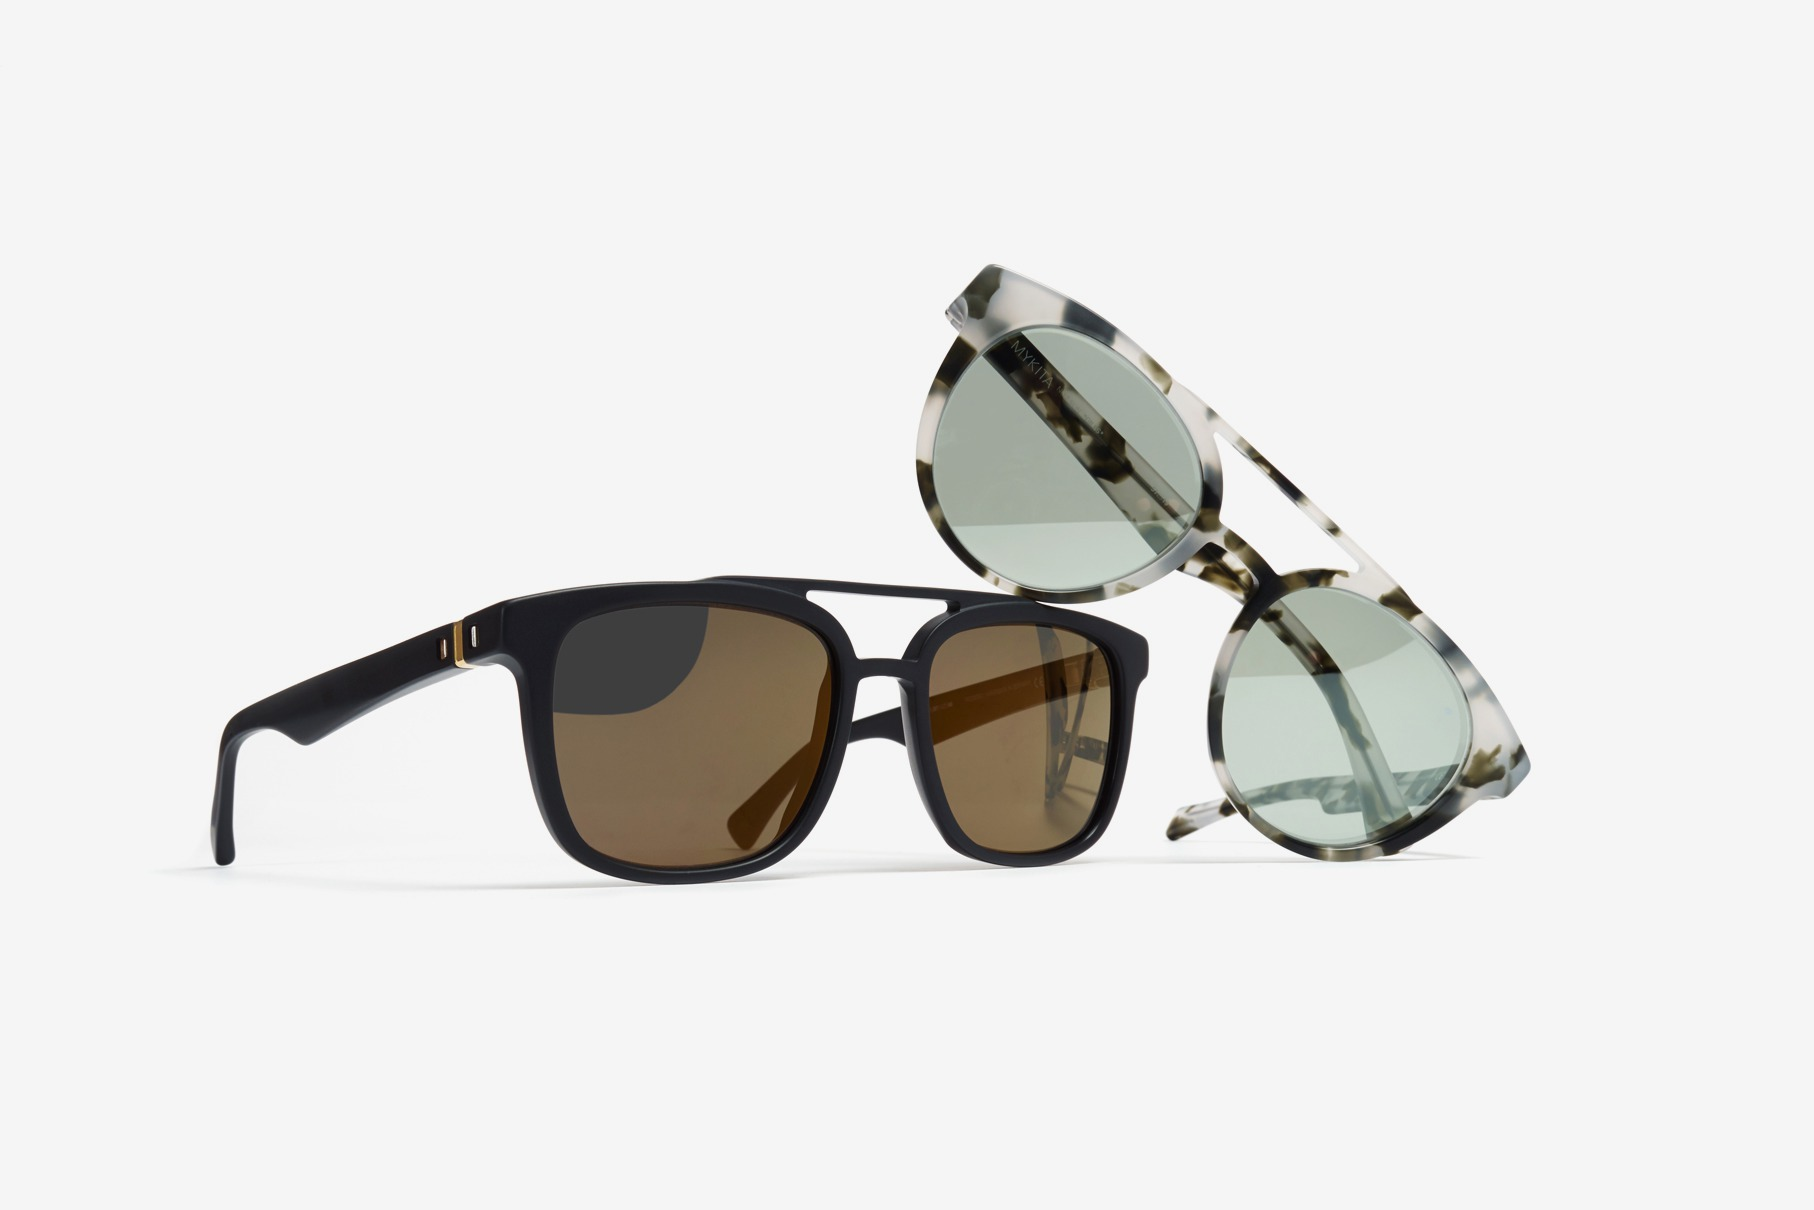 A first sneak peek at the new MYKITA collection of designer sunglasses and optical frames featuring Giles and Jarvis.